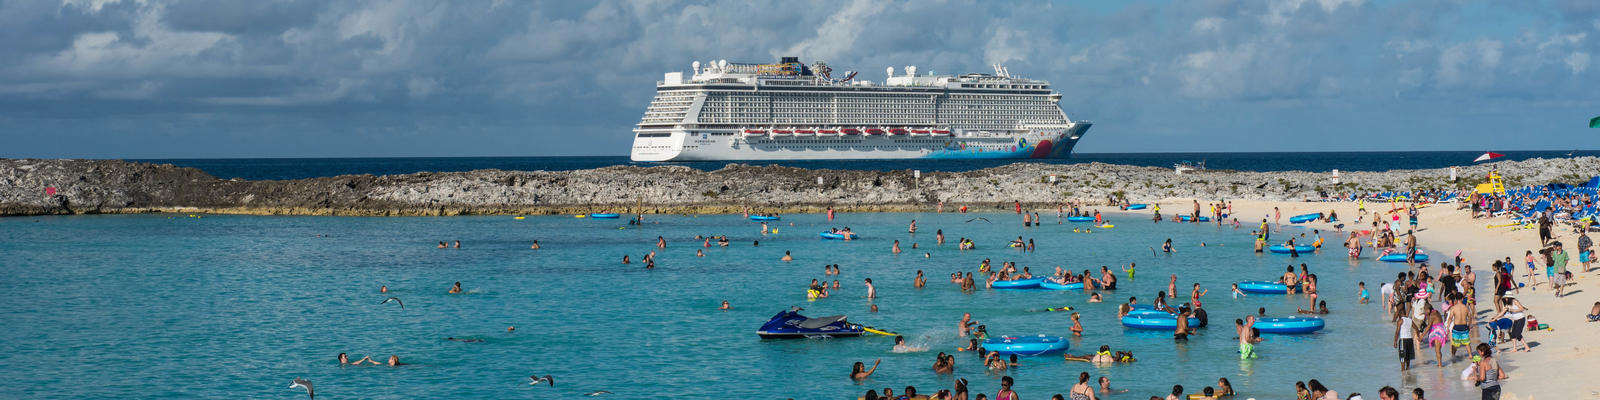 5 Cruise Booking Mistakes to Avoid (Photo: Cruise Critic)